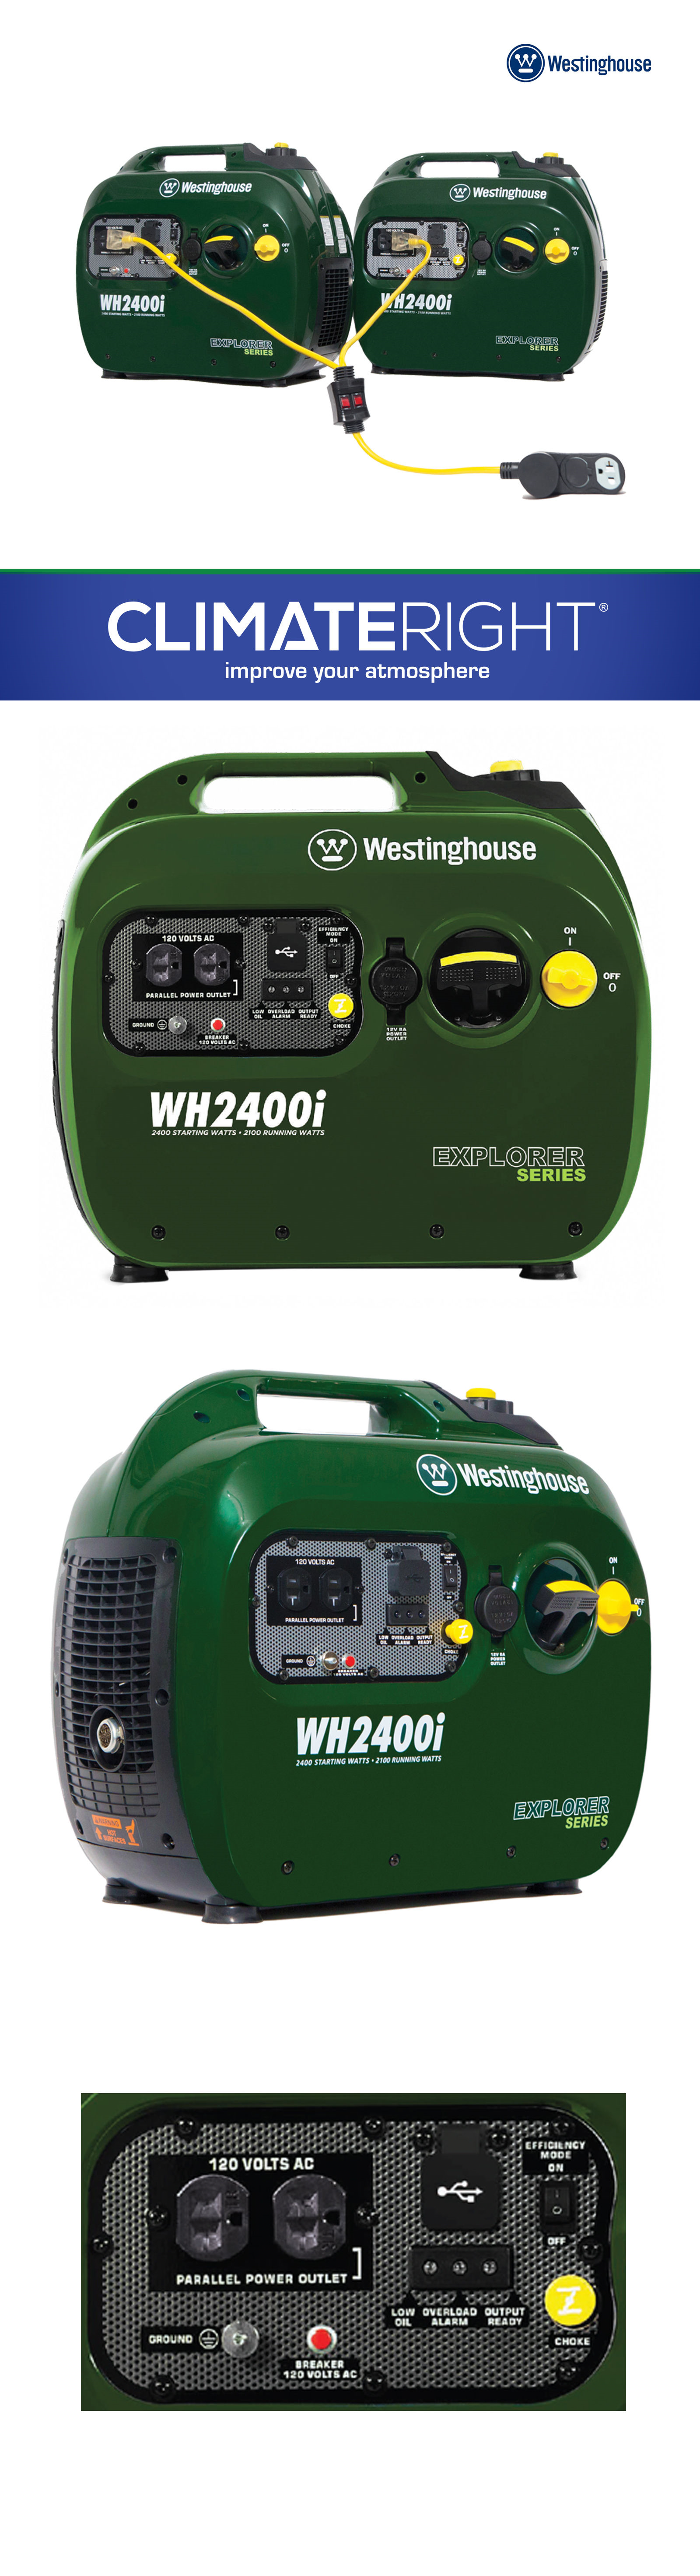 Generators and Heaters 2 Westinghouse Wh2400i Portable Gas